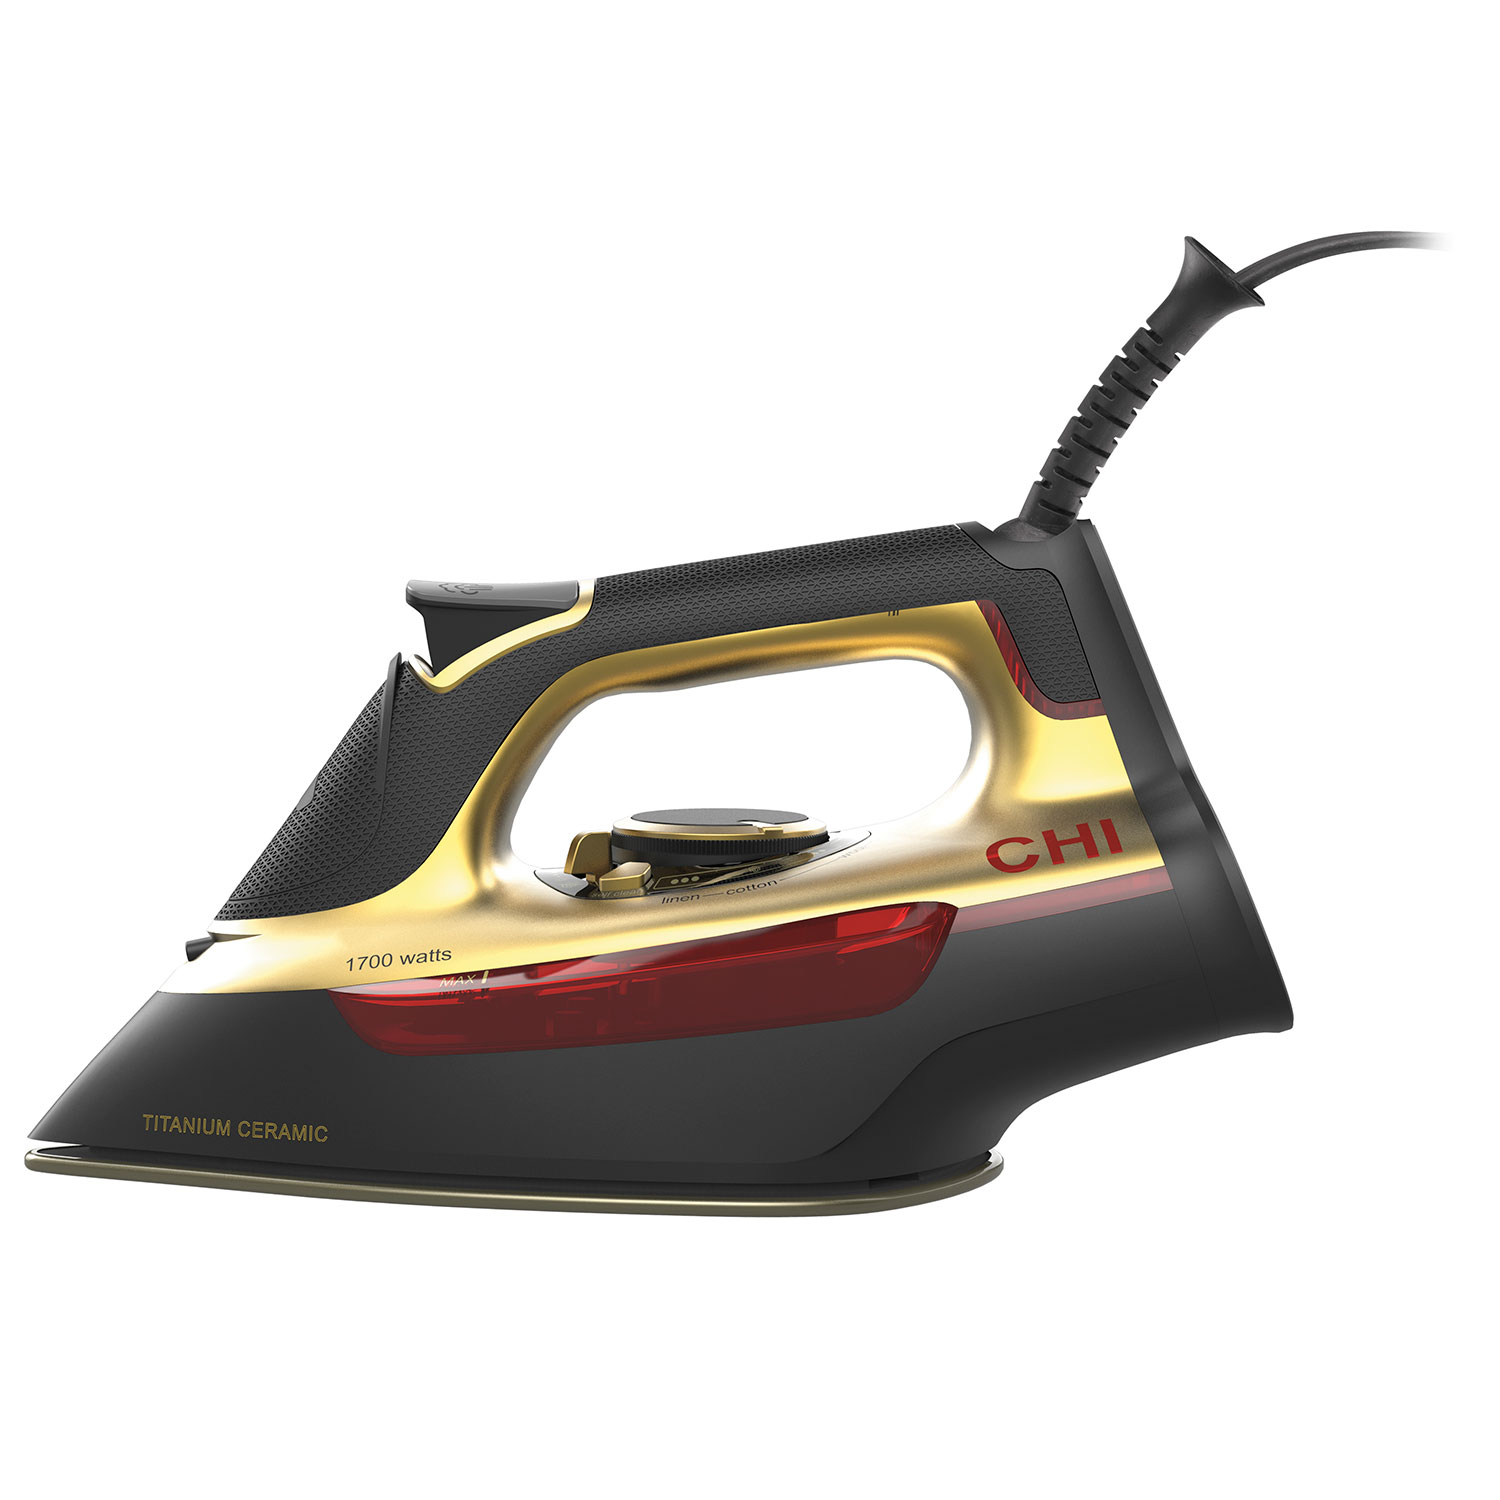 CHI Professional Iron 13111 - Side View